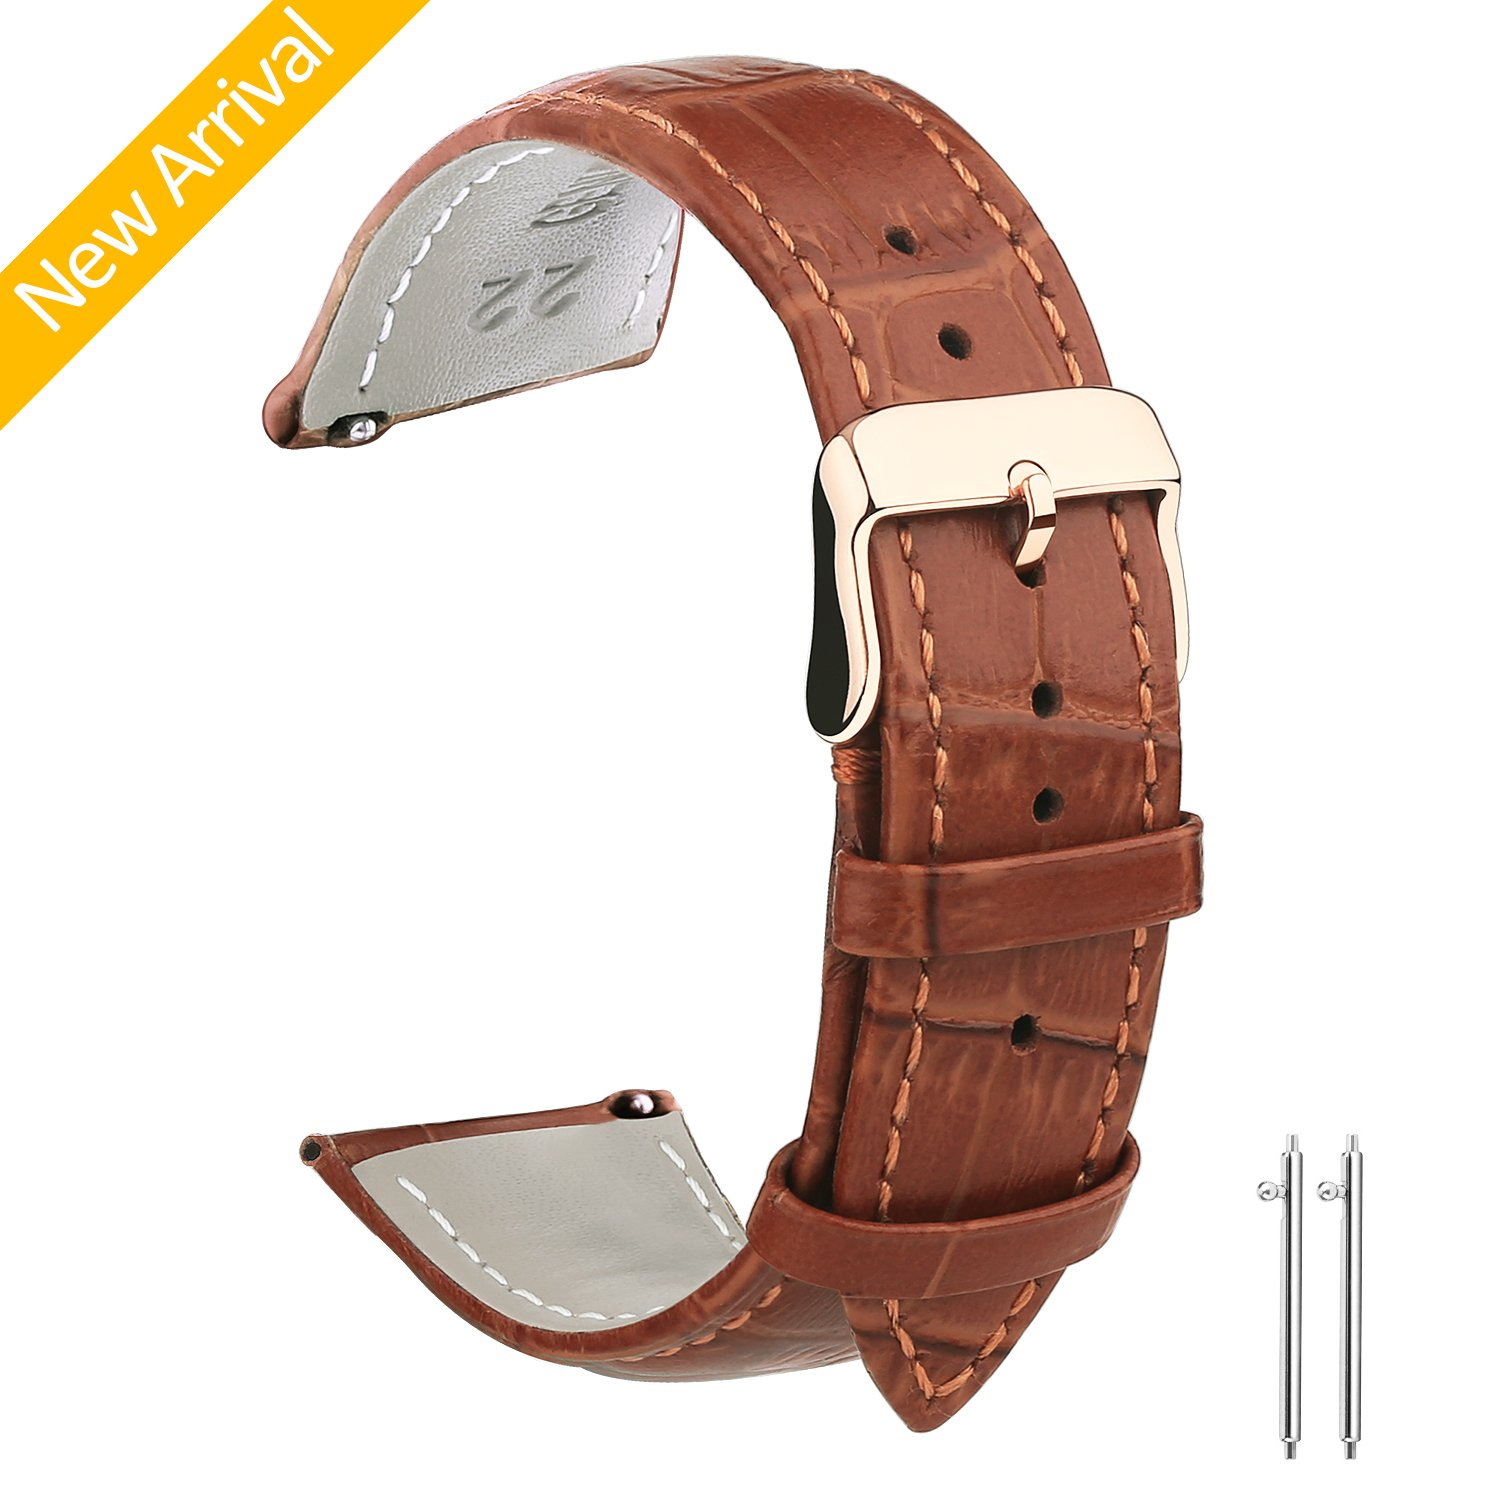 Vetoo 22mm/20mm Watch Bands Leather, Quick Release Classic Genuine Leather Replacement Watch Strap Wristband for Men and Women (Light Brown & Rose Gold)